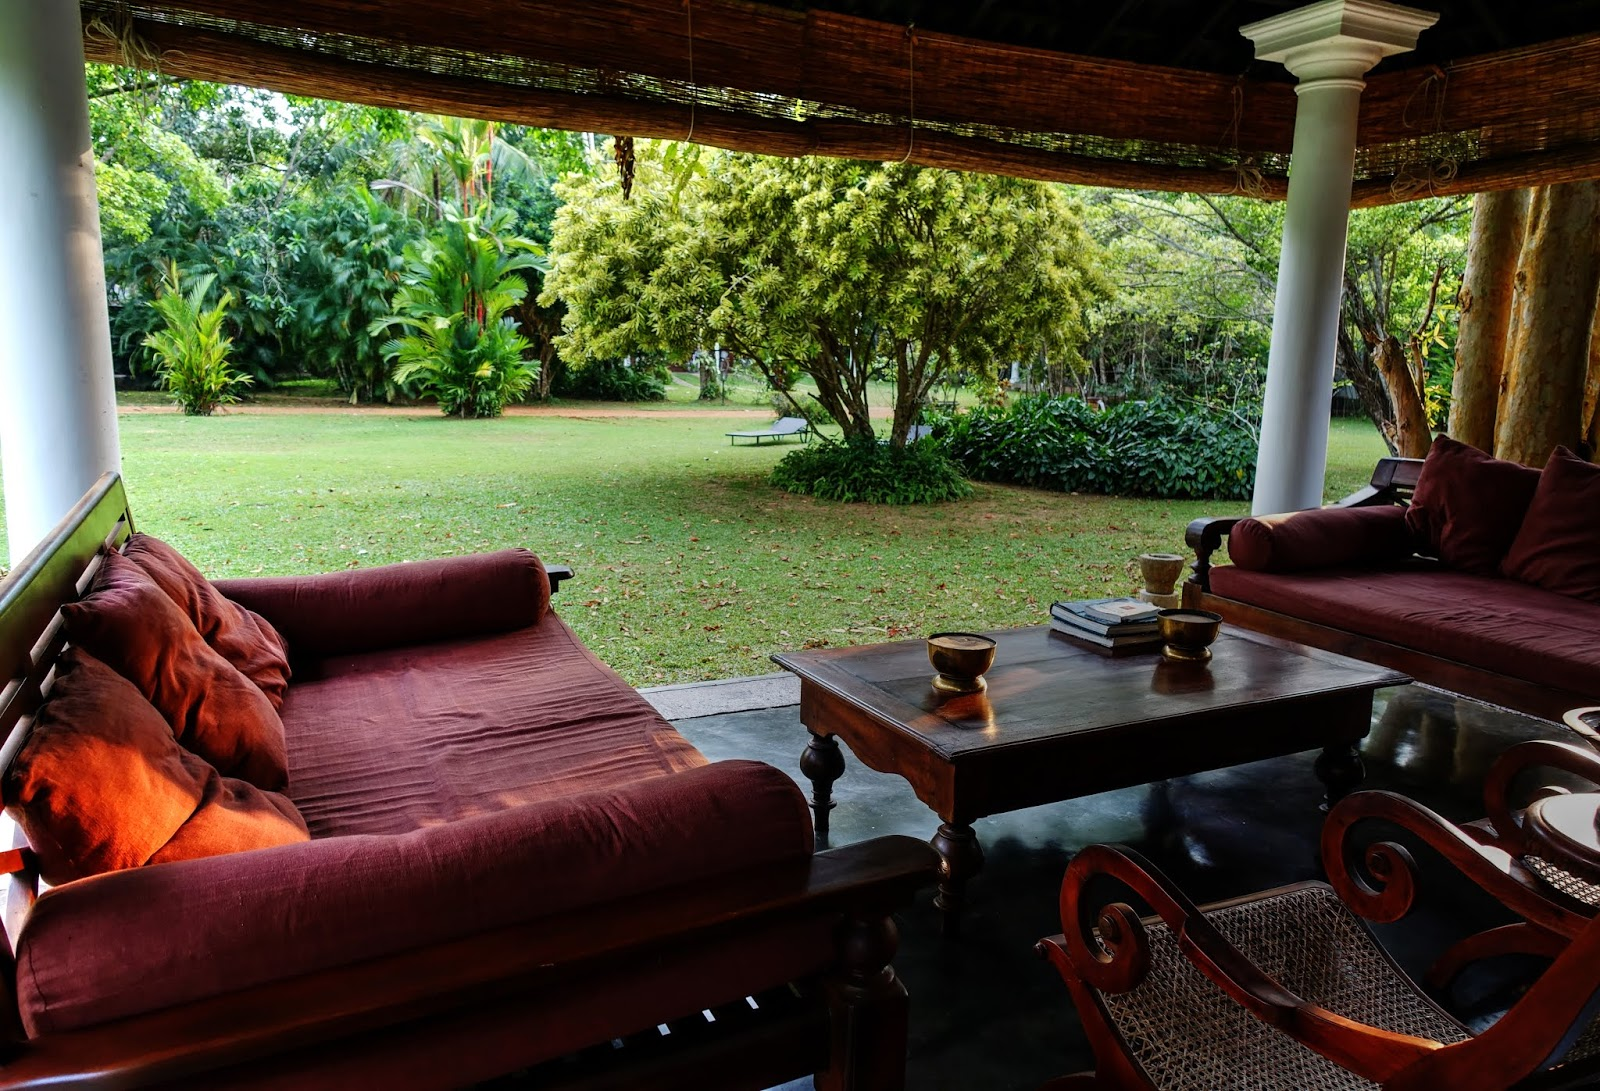 Our Airbnb in Sri Lanka